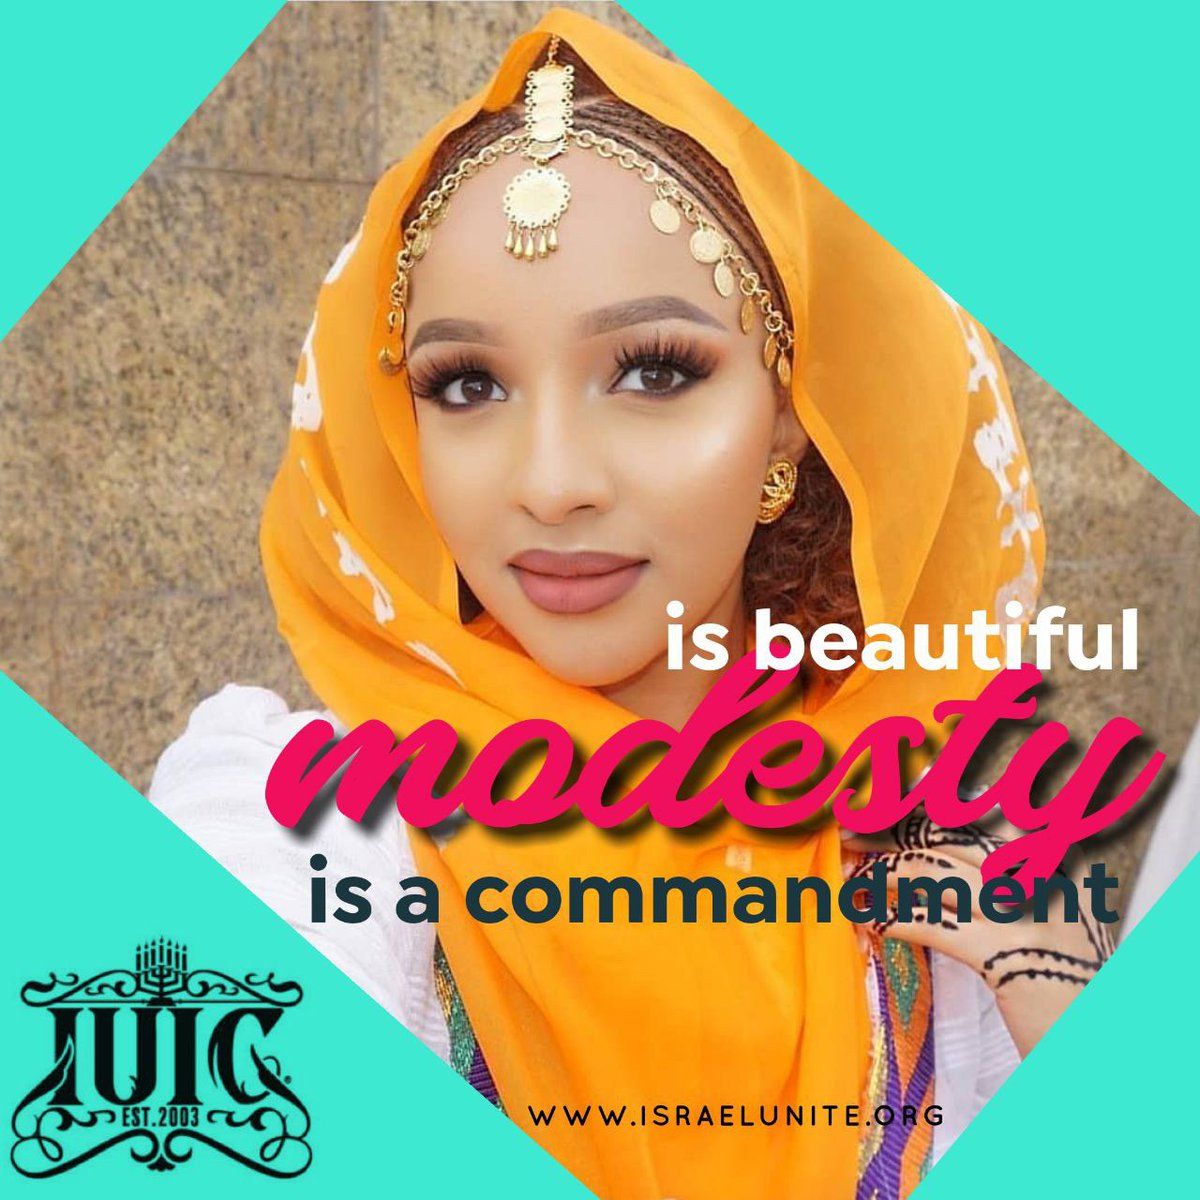 Let your modesty shine!!!   1 Timothy 2:9 [9]In like manner also, that women adorn themselves in modest apparel, with shamefacedness and sobriety; not with broided hair, or gold, or pearls, or costly array;  #Beautiful #Modesty #ModestApparel #Shamefaced #KeeptheCommandmentspic.twitter.com/IJ4hsrsqzP